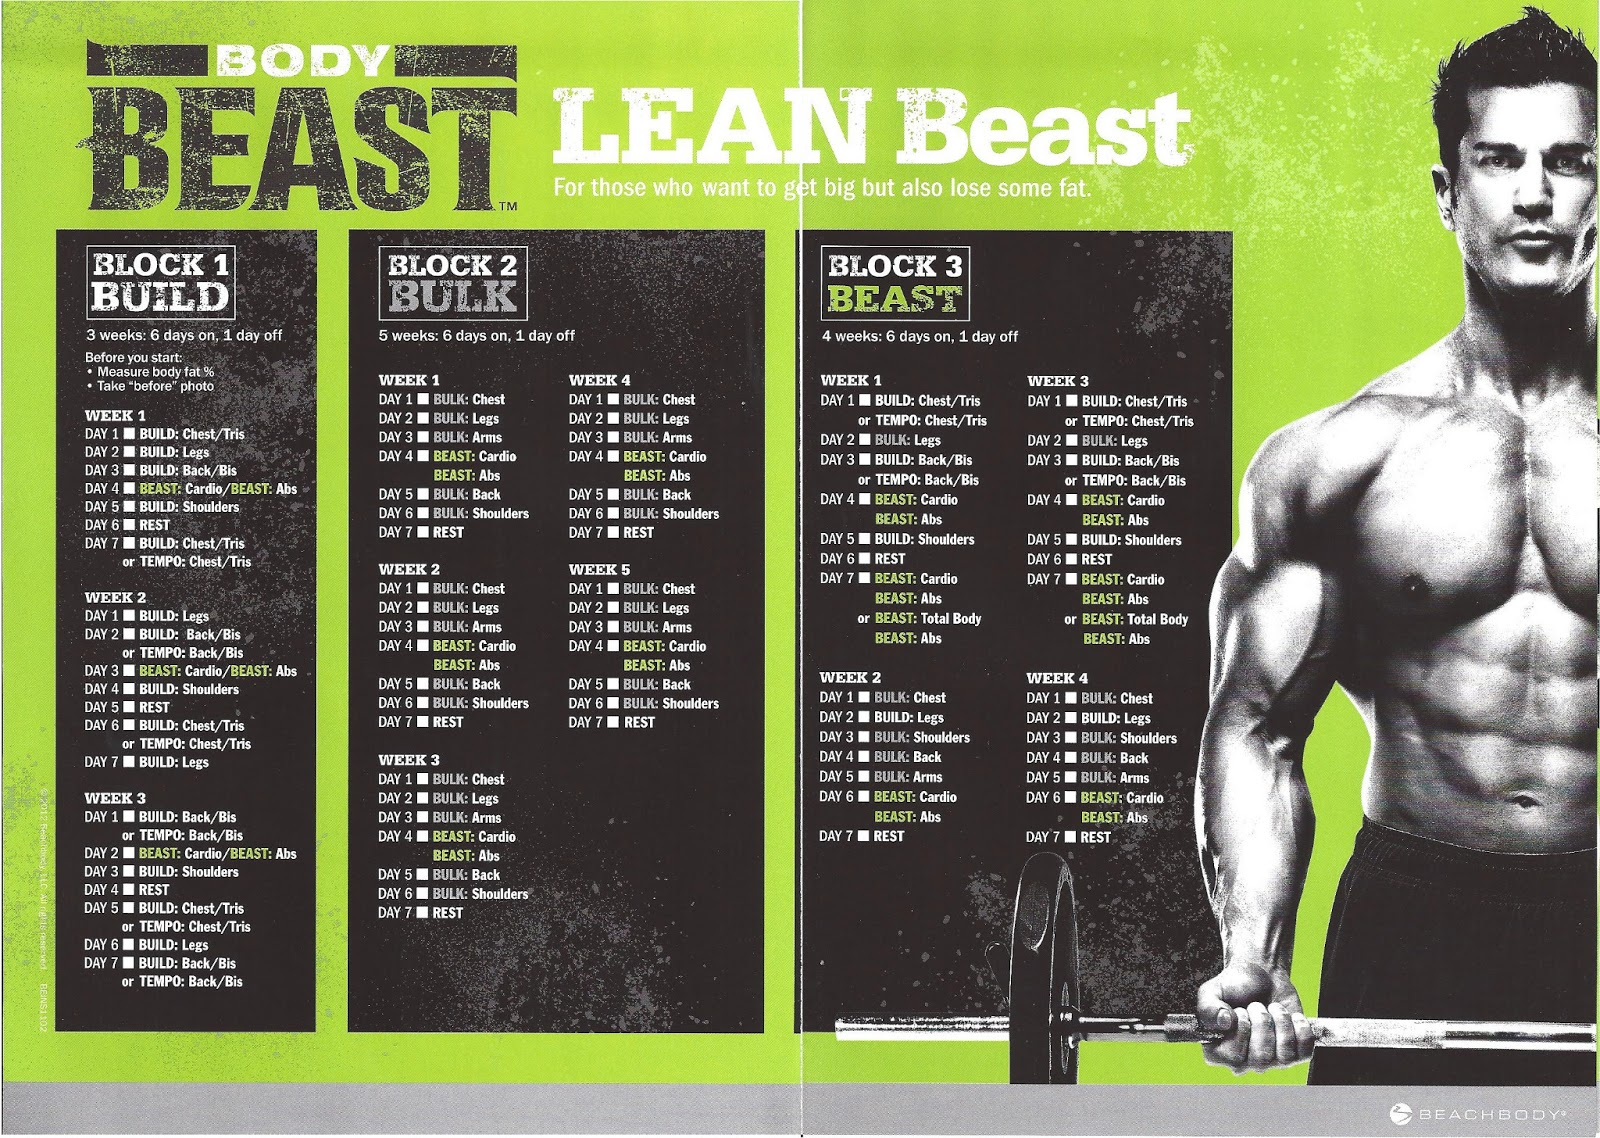 Body_Beast_Lean_Beast_Schedule.jpg